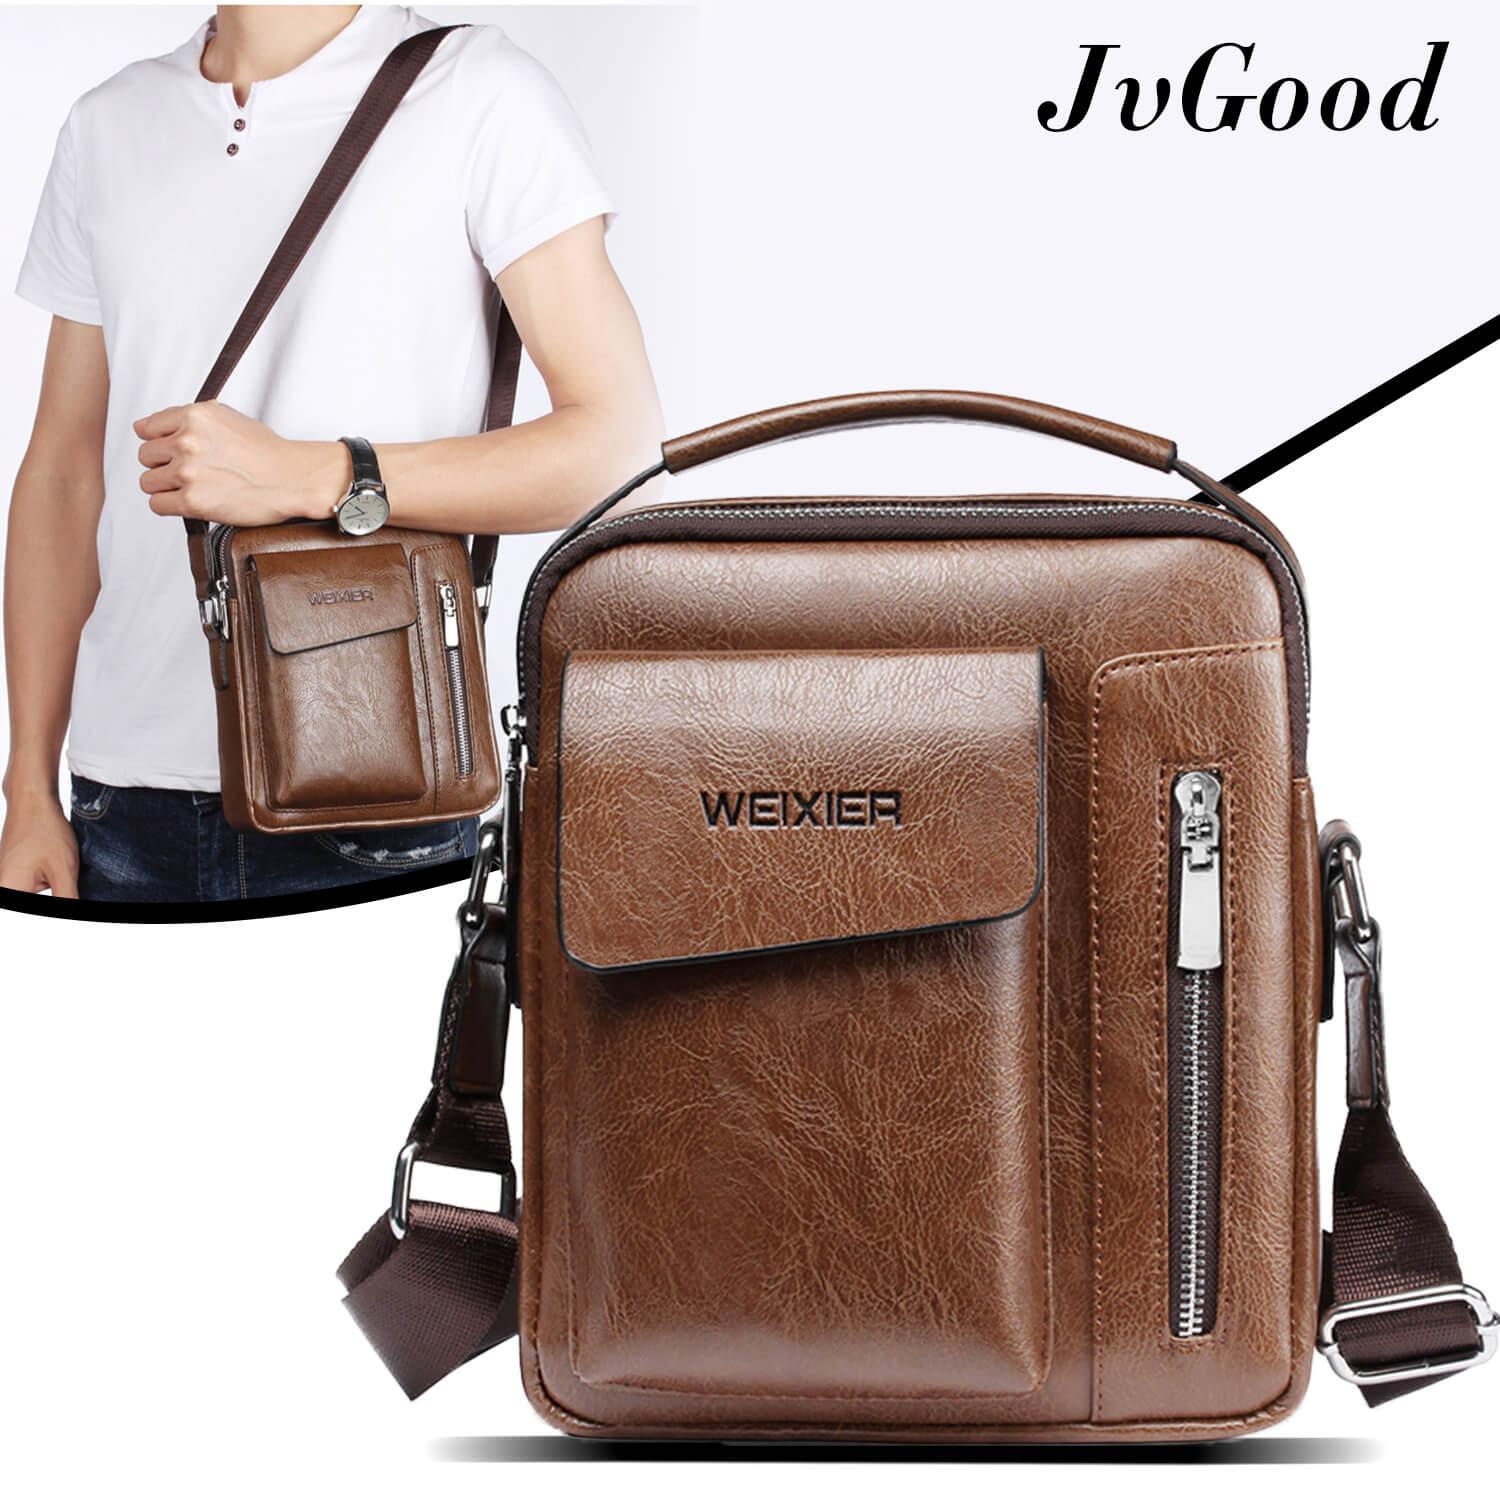 Jvgood Messenger Bag Pu Leather Sling Shoulder Male Travel Casual Crossbody Bags Small Flap Handbags